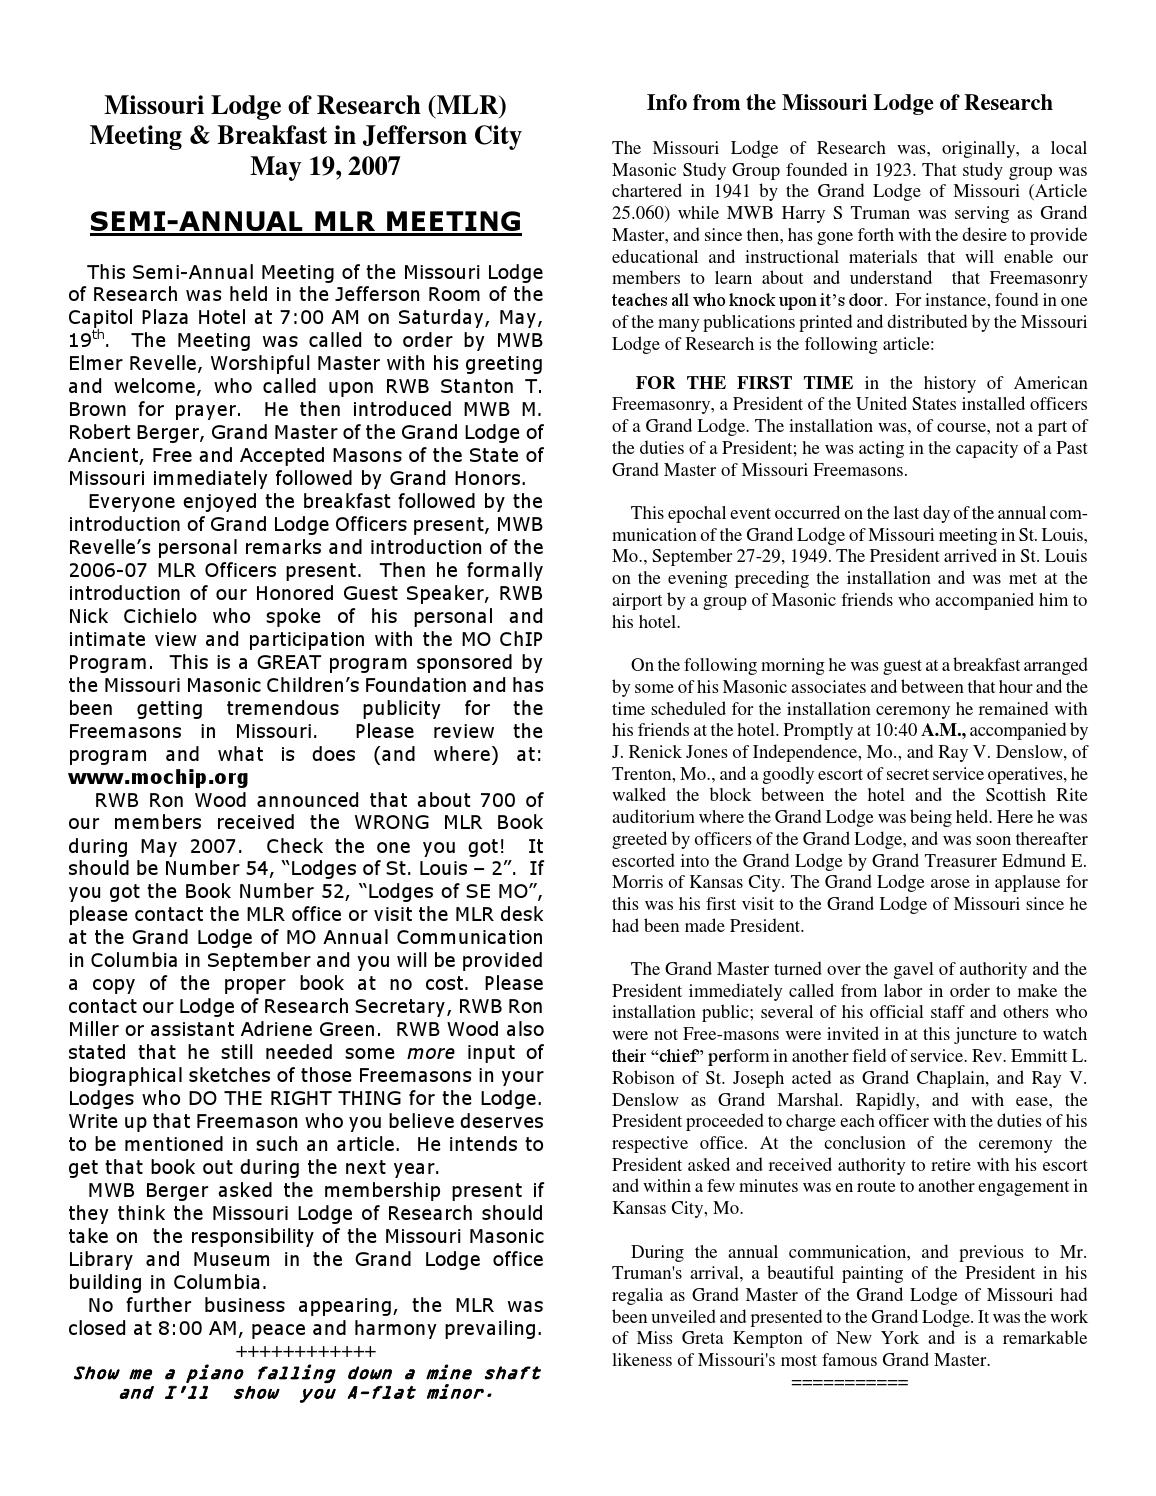 07 02 by Missouri Lodge of Research - issuu